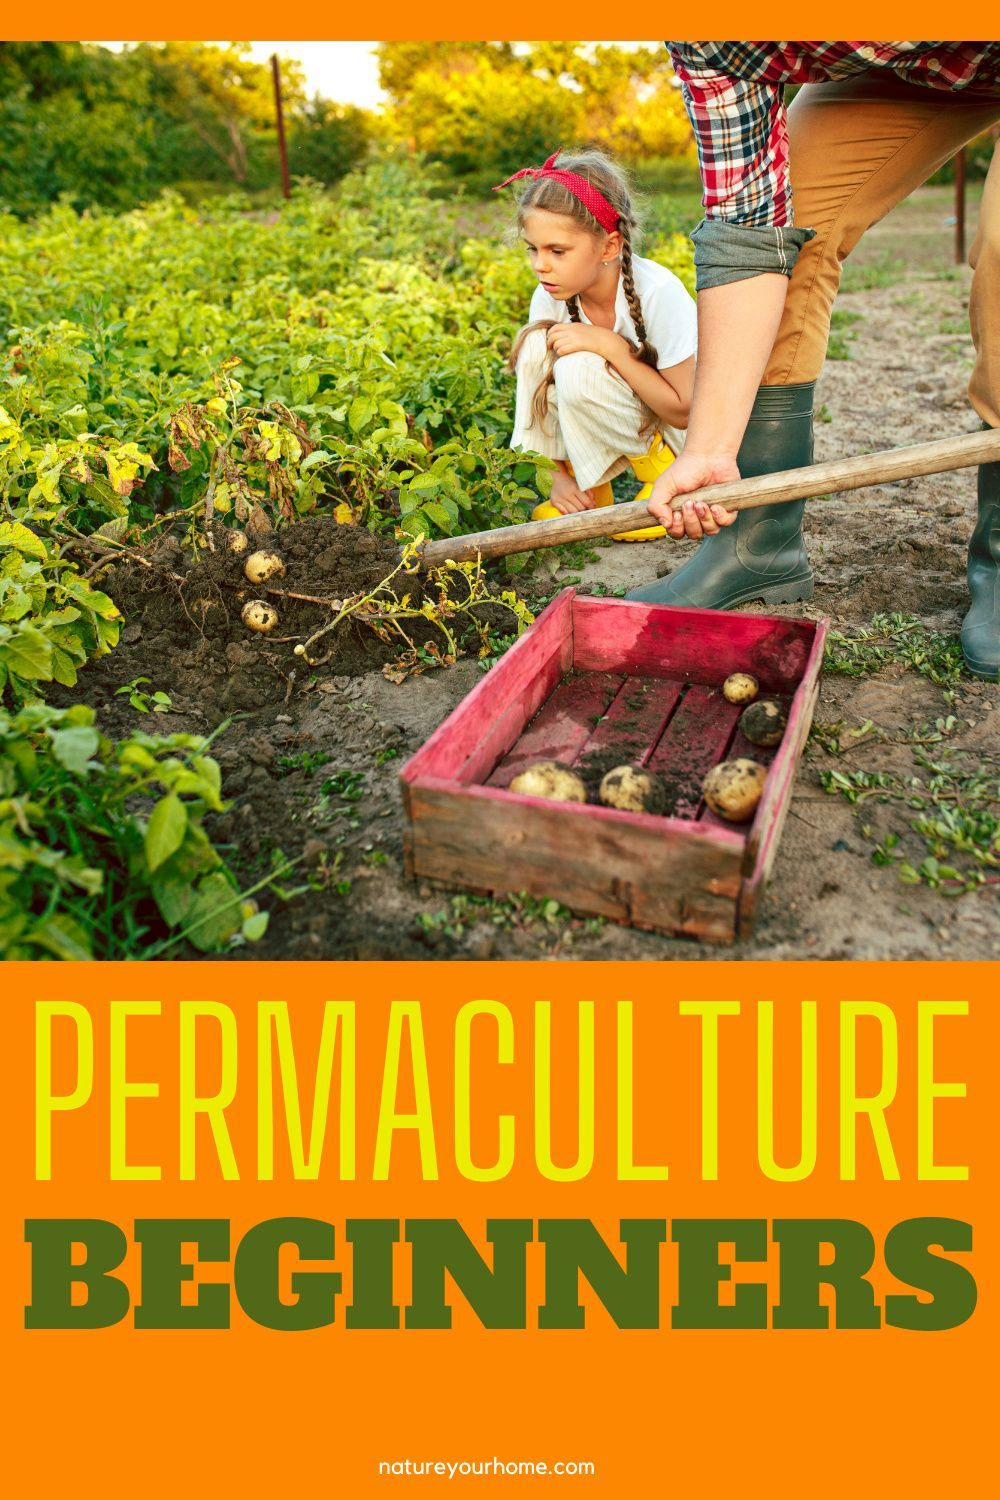 What is permaculture? How to start a permaculture jardin? Discover the permaculture principles and more! #natureyourhome#selfsustaininggarden#growingvegetable#permaculturejardin#vegetablegarden